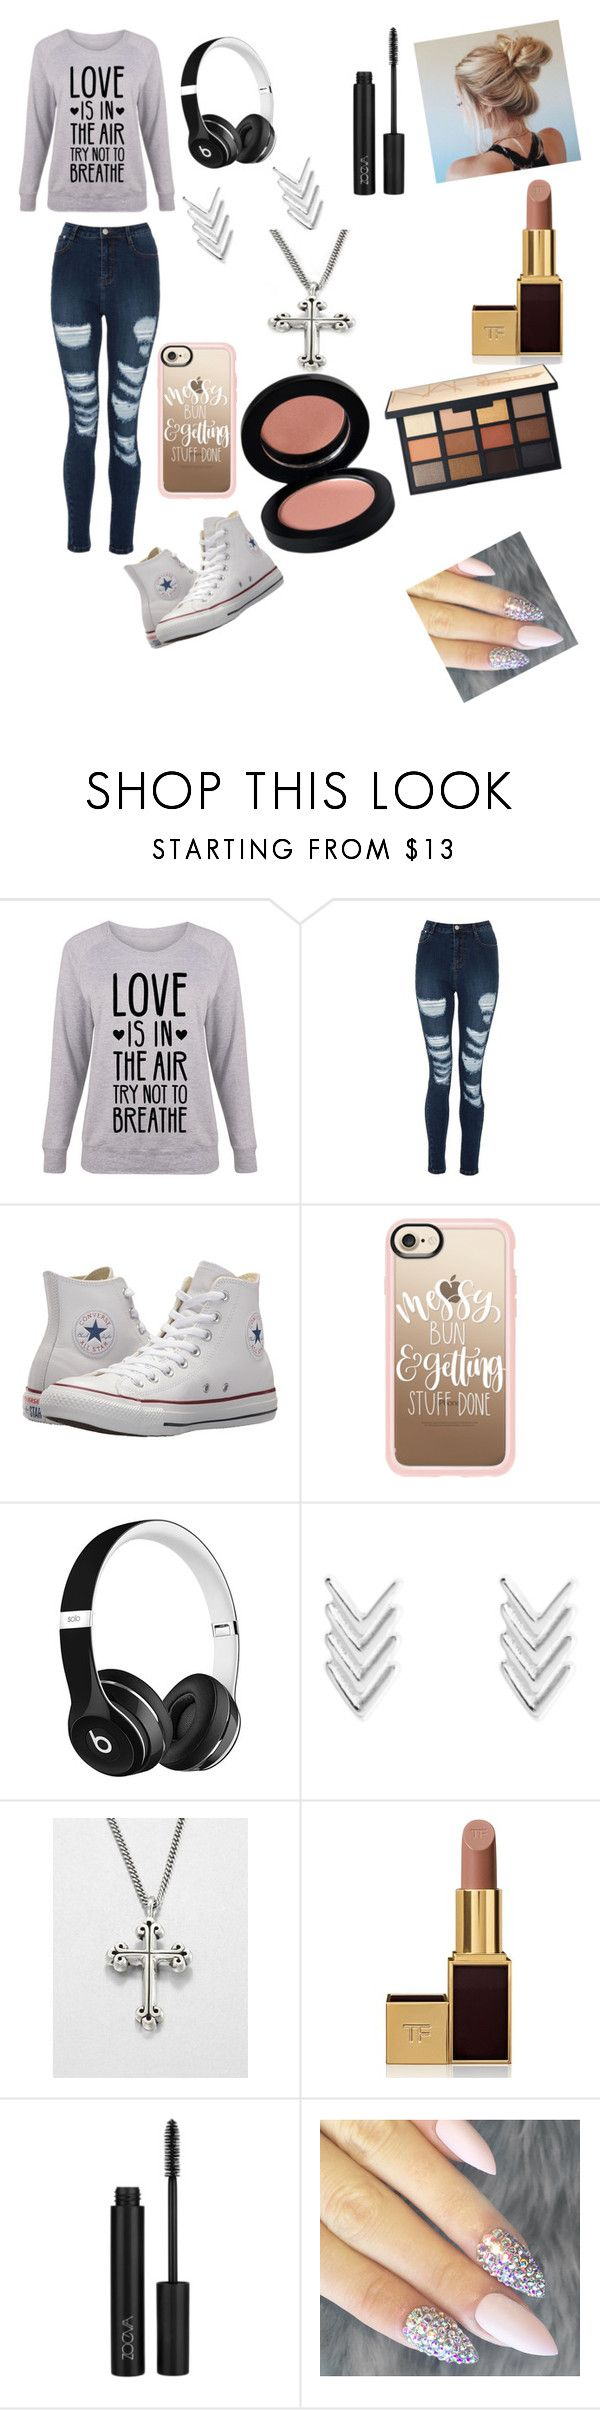 """""""Landry's outfit // chap 38"""" by hannahlewis23 ❤ liked on Polyvore featuring Converse, Casetify, Beats by Dr. Dre, King Baby Studio, Tom Ford, ZOEVA and plus size clothing"""